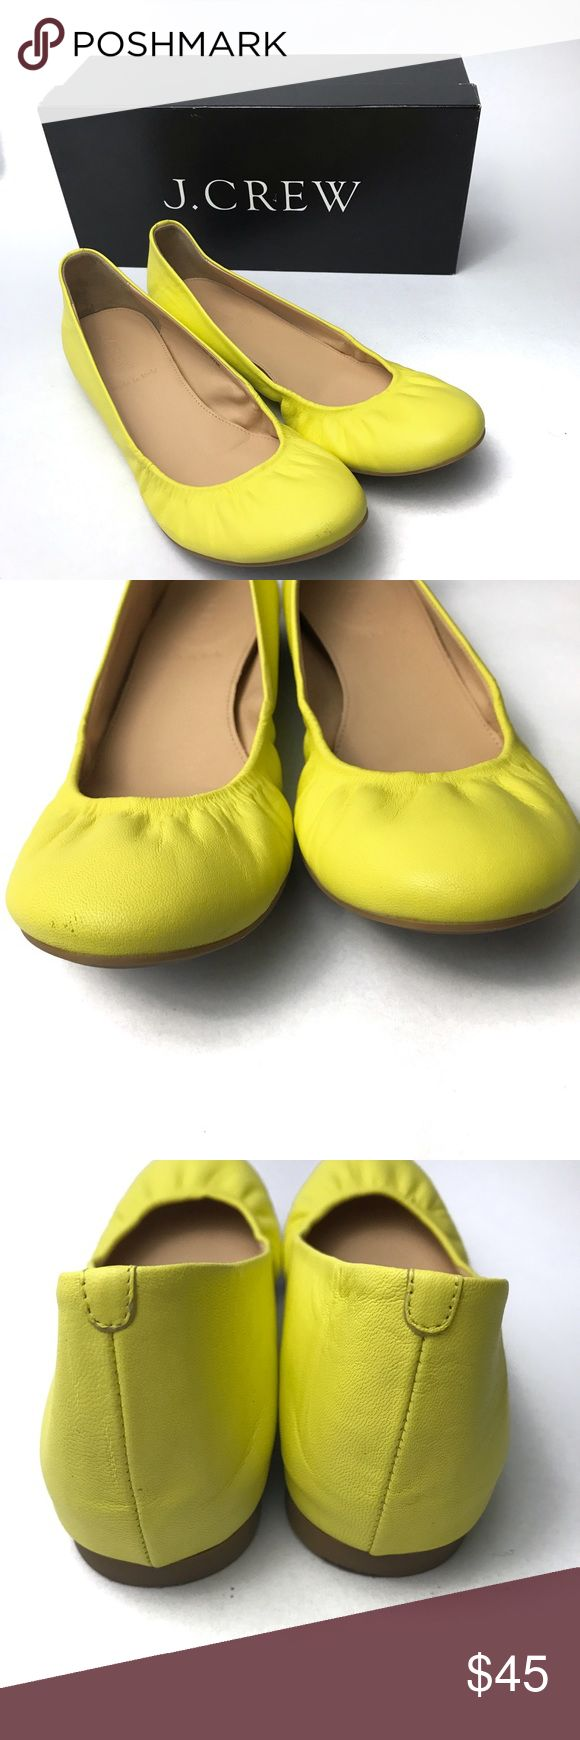 J. Crew CeCe Ballet Flats Dazzling Sun 7.5 The color description for these ballet flats is so apt. They are a bright, dazzling yellow! They were worn once and are in excellent condition. The only flaw I could find was a slight scuff mark on the toe of the right shoe. See second pic. J. Crew Shoes Flats & Loafers